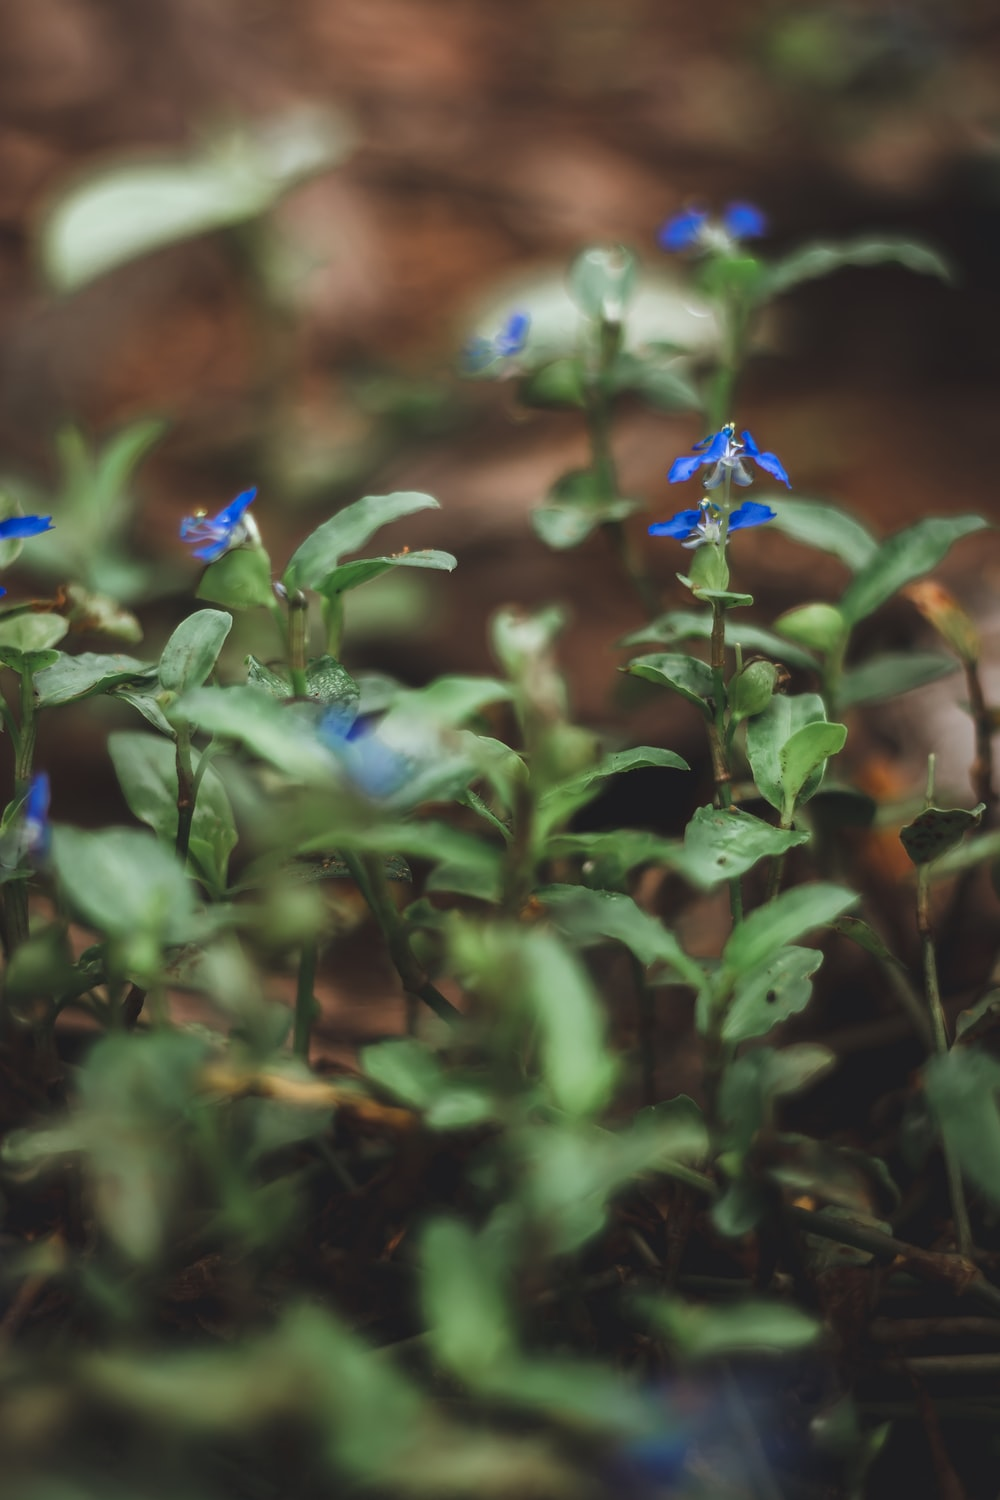 blue flower with green leaves